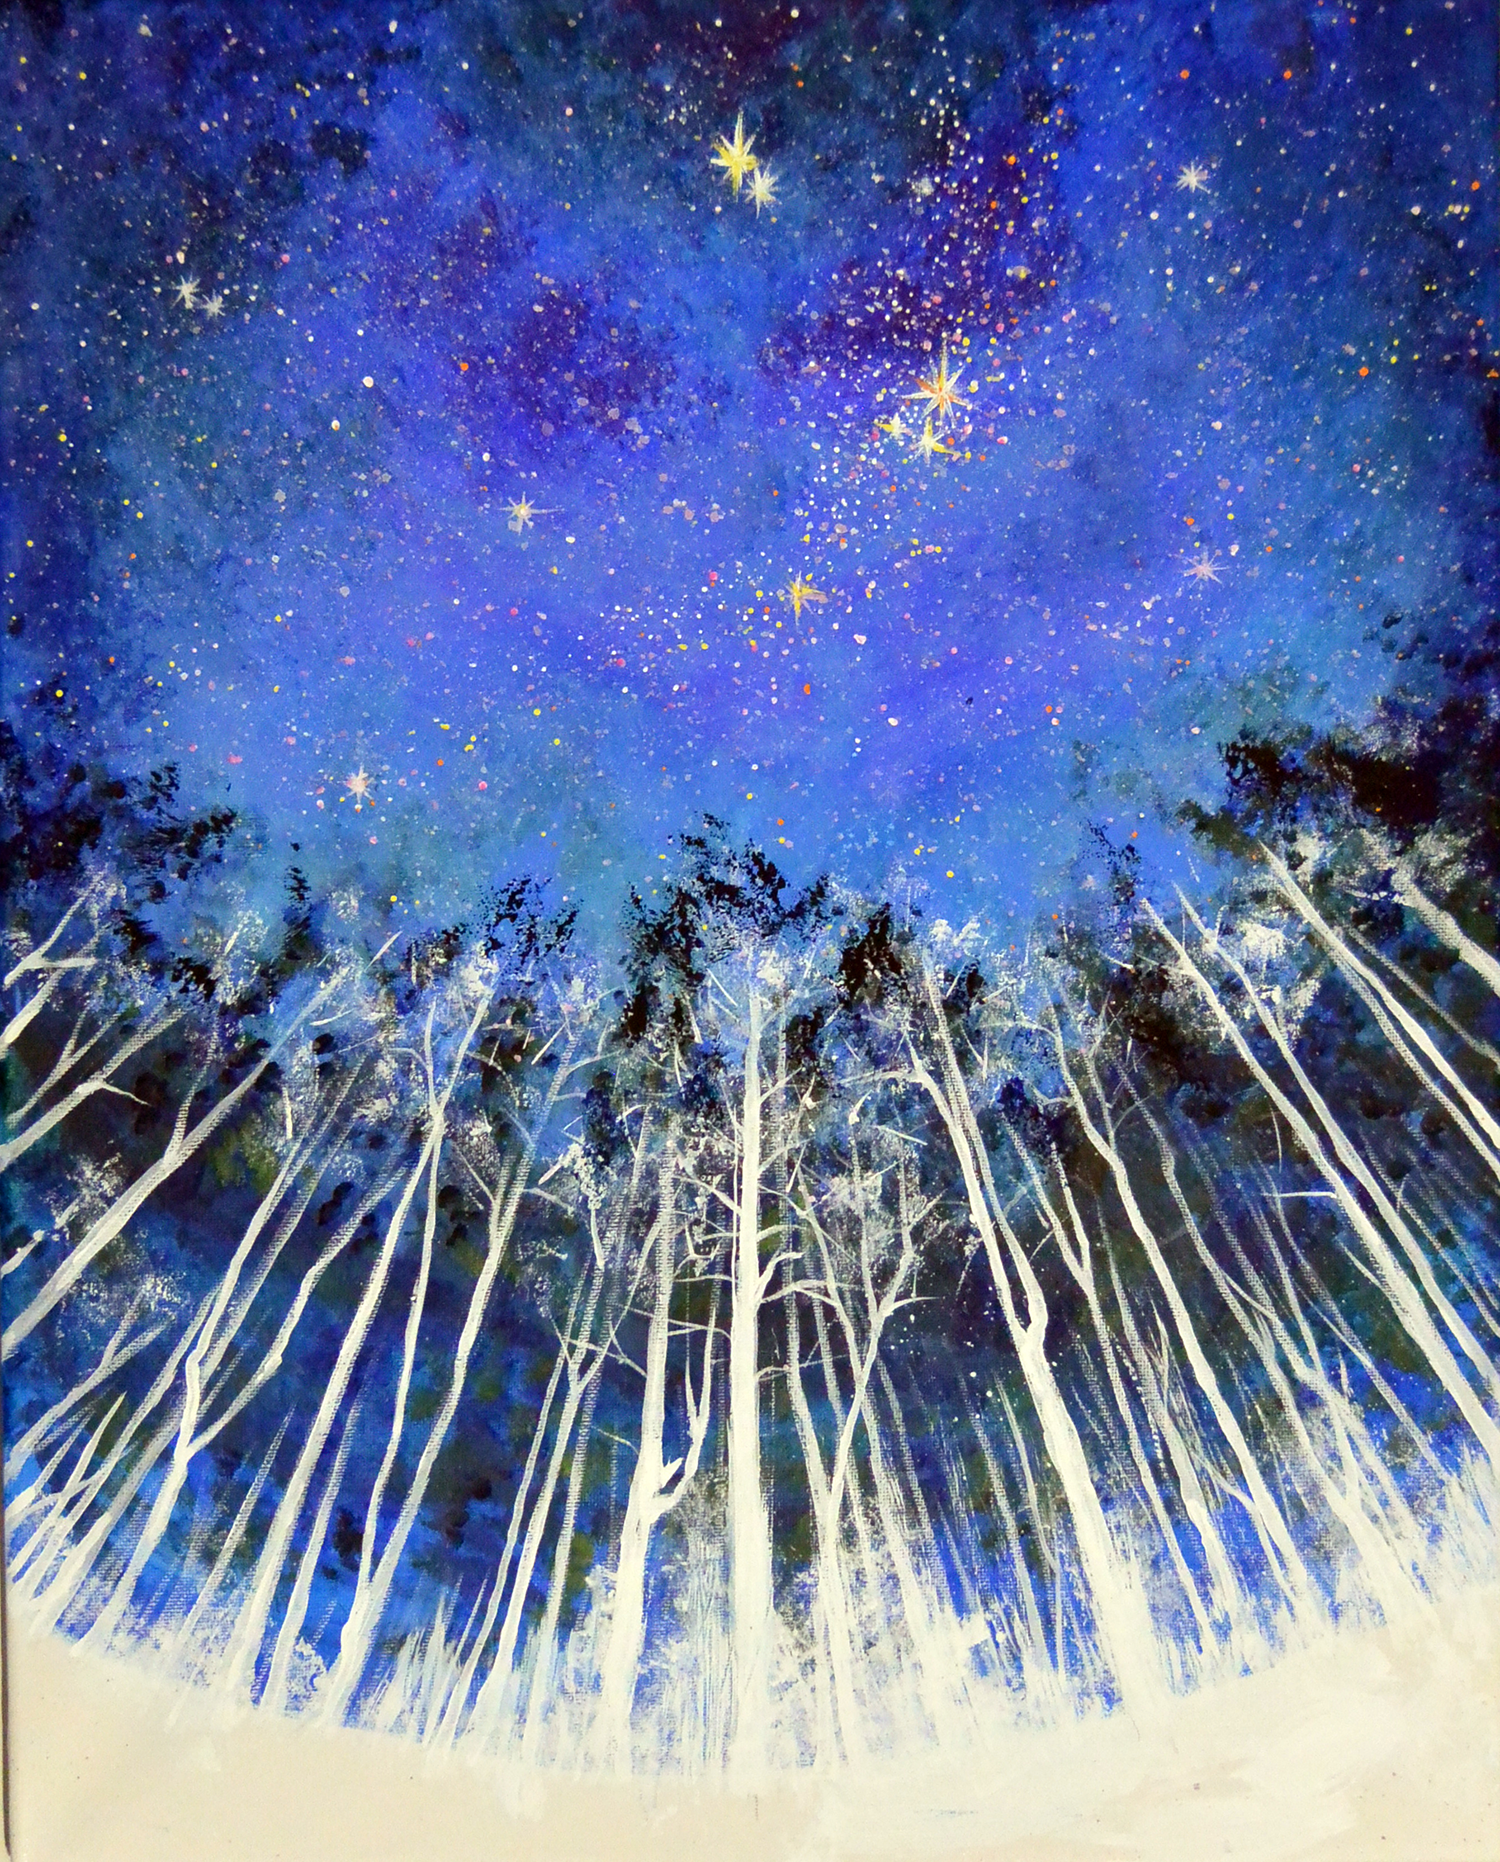 mimiama-starry-night-white-16x20in-acrylic-canvasweb.png